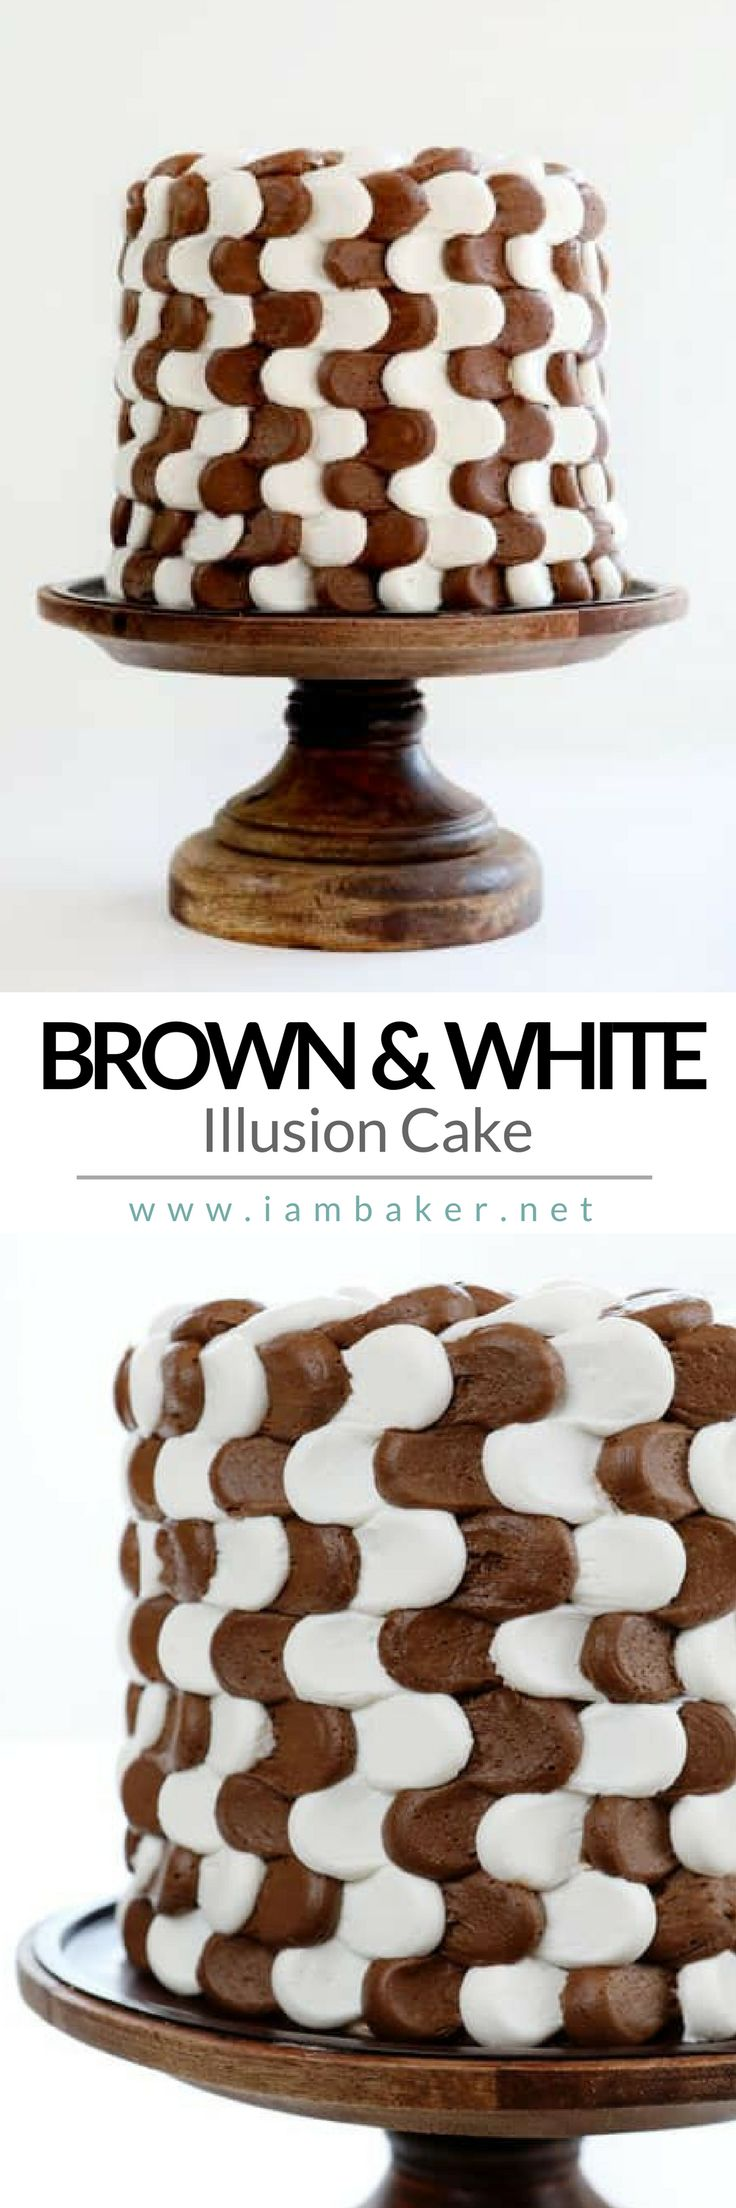 Hey, Mom! If you are looking for a creative cake recipe for a dessert for kids, try this simple yet delicious food- Brown and White Illusion Cake! With chocolate buttercream frosting you're kids will probably love all your baking sweet treats! This is not perfect but it can be the best dessert recipe you can try! More dessert recipes @iambaker #iambaker #iambakerdessert #iambakercake